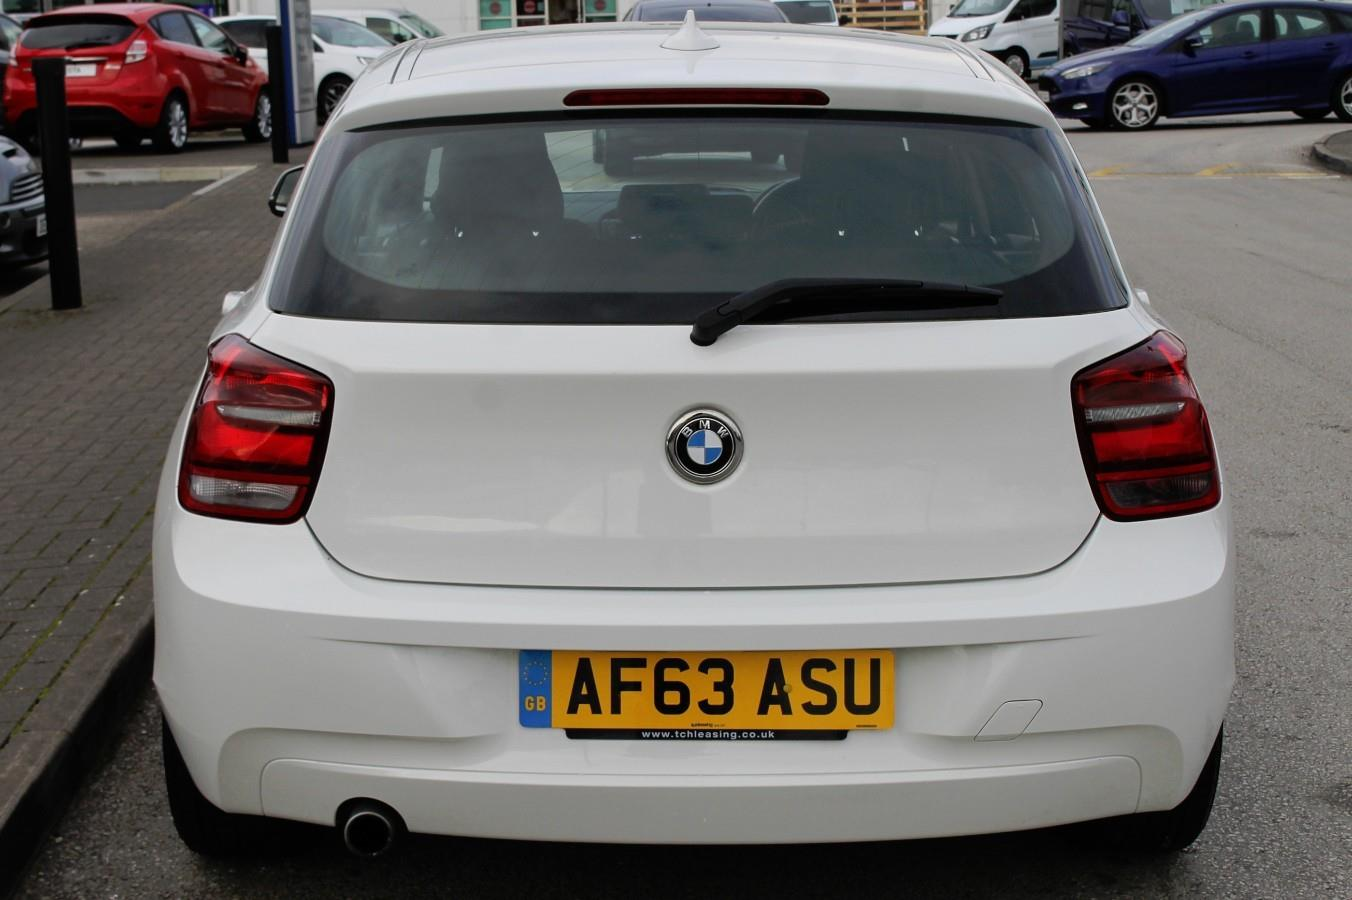 BMW 1 series 116d 2013 photo - 10